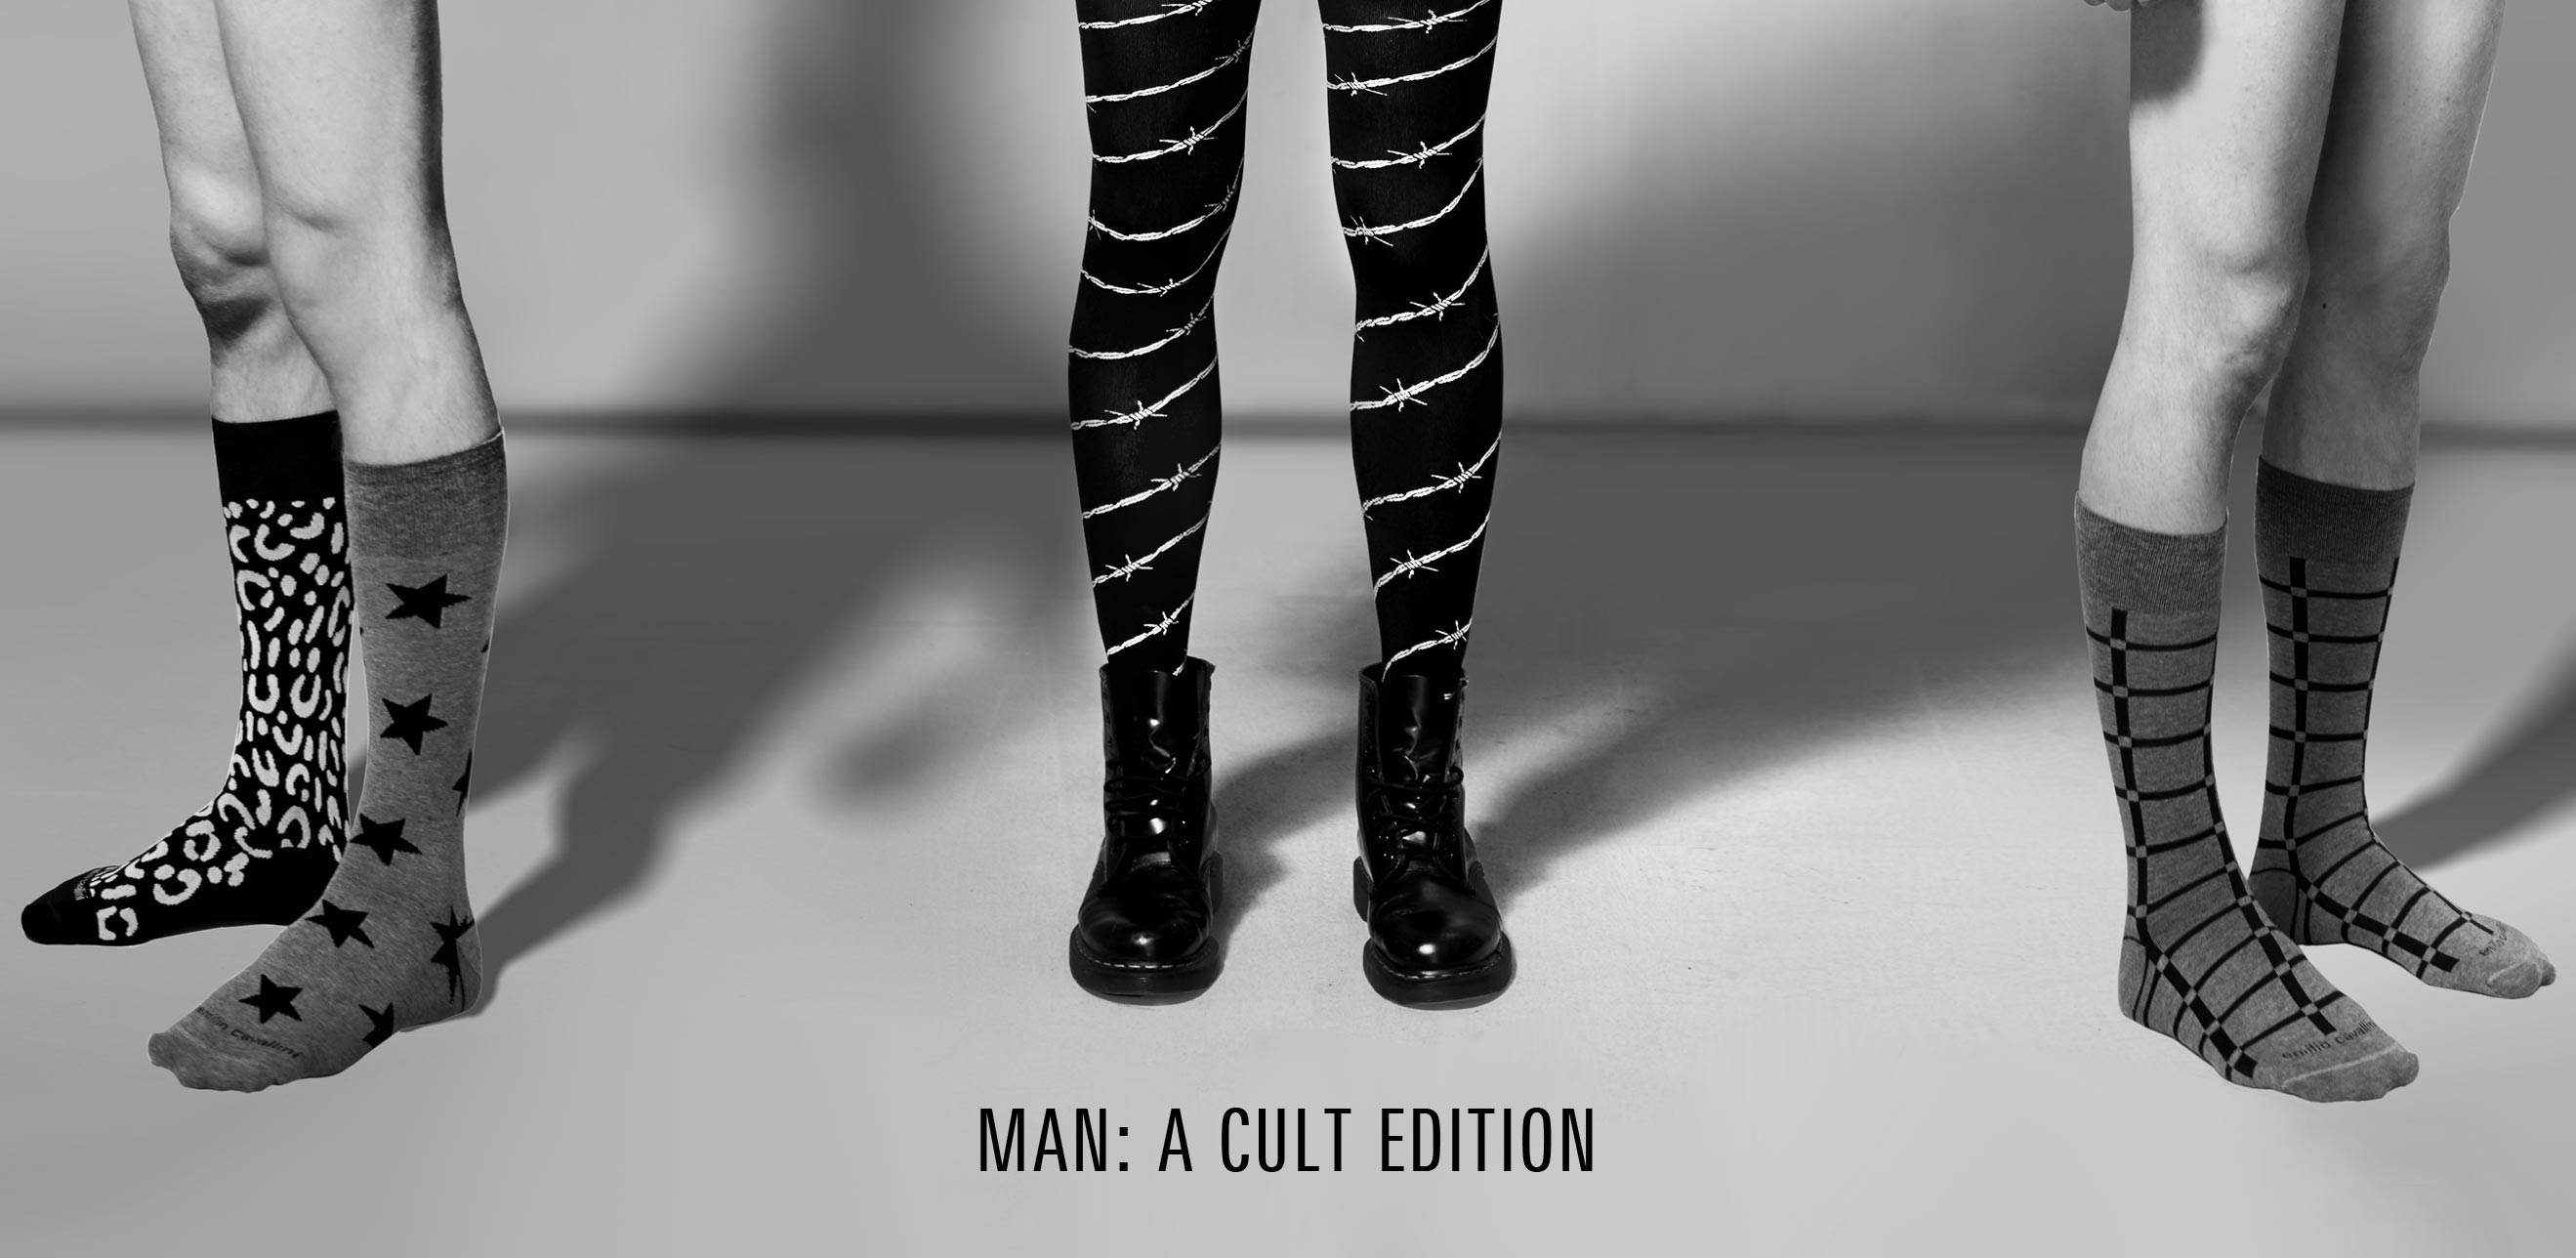 Cult Edition for Man - Tights for Man Mantyhose and Socks